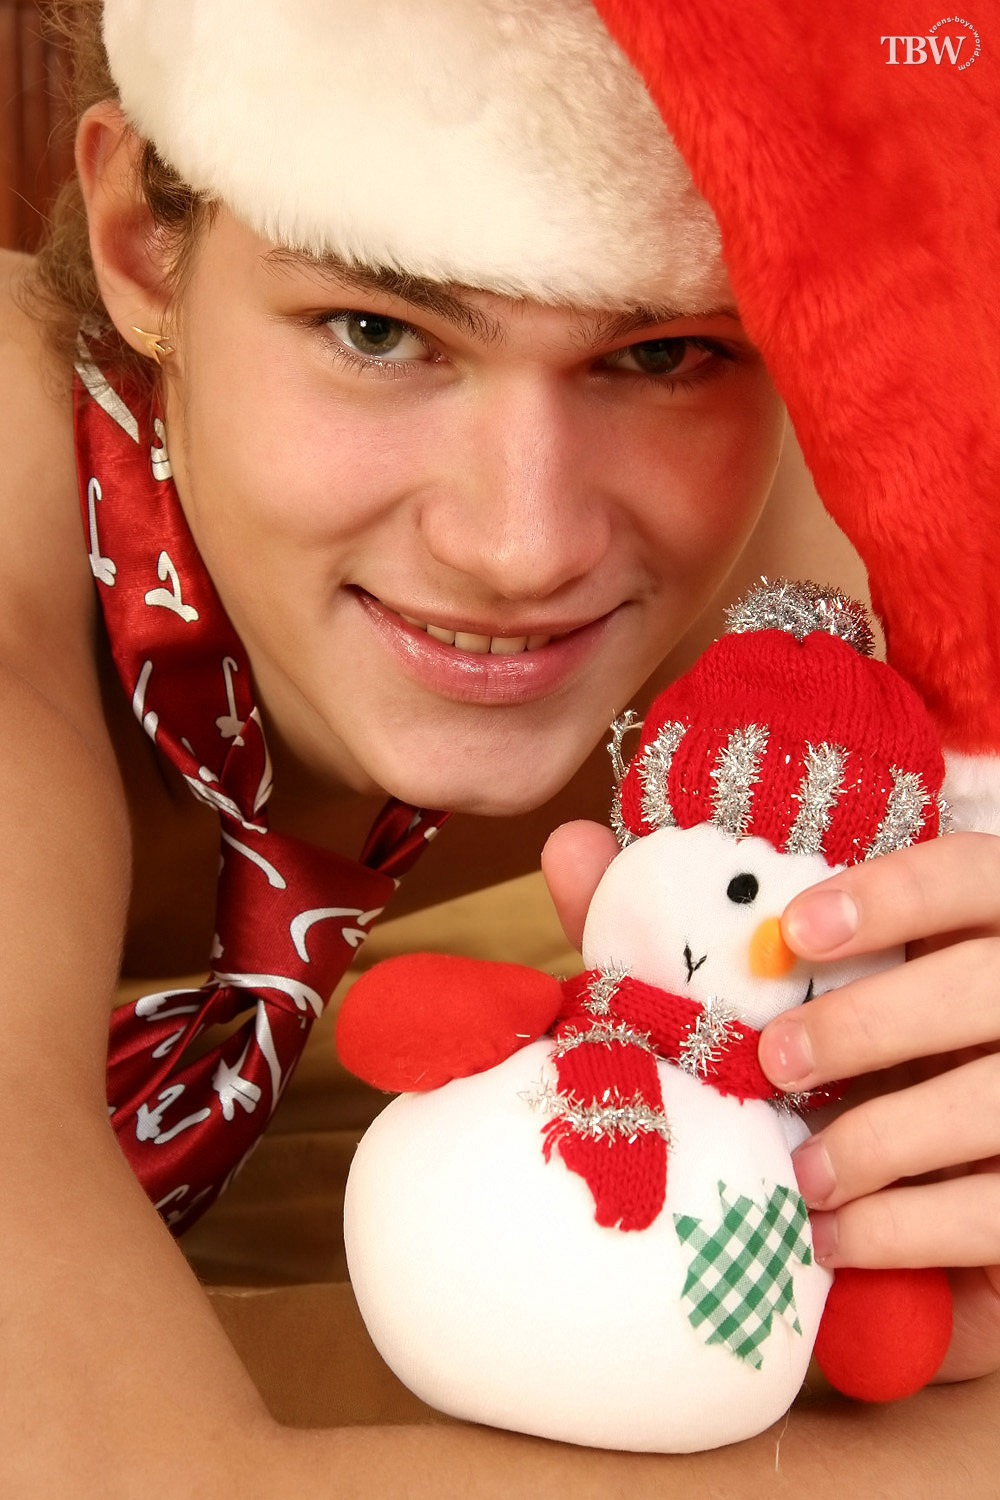 Happy Holidays from Gay Teen Boys 18 and TBW